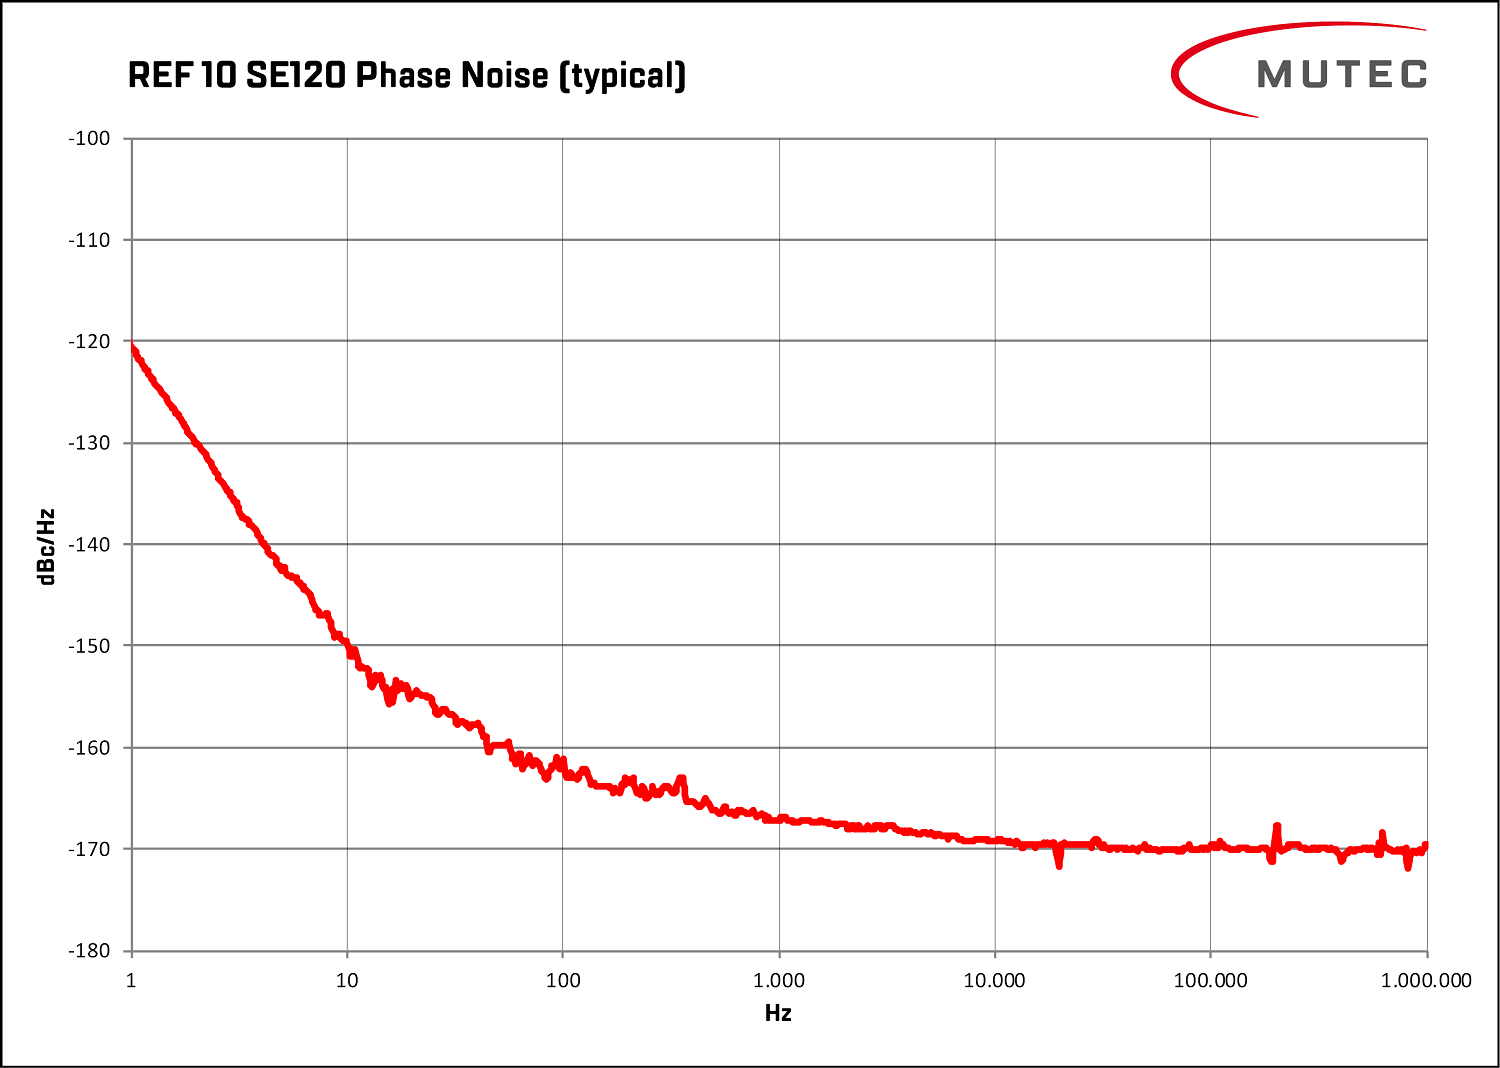 Phase noise of the REF10 SE120 as a function of frequency